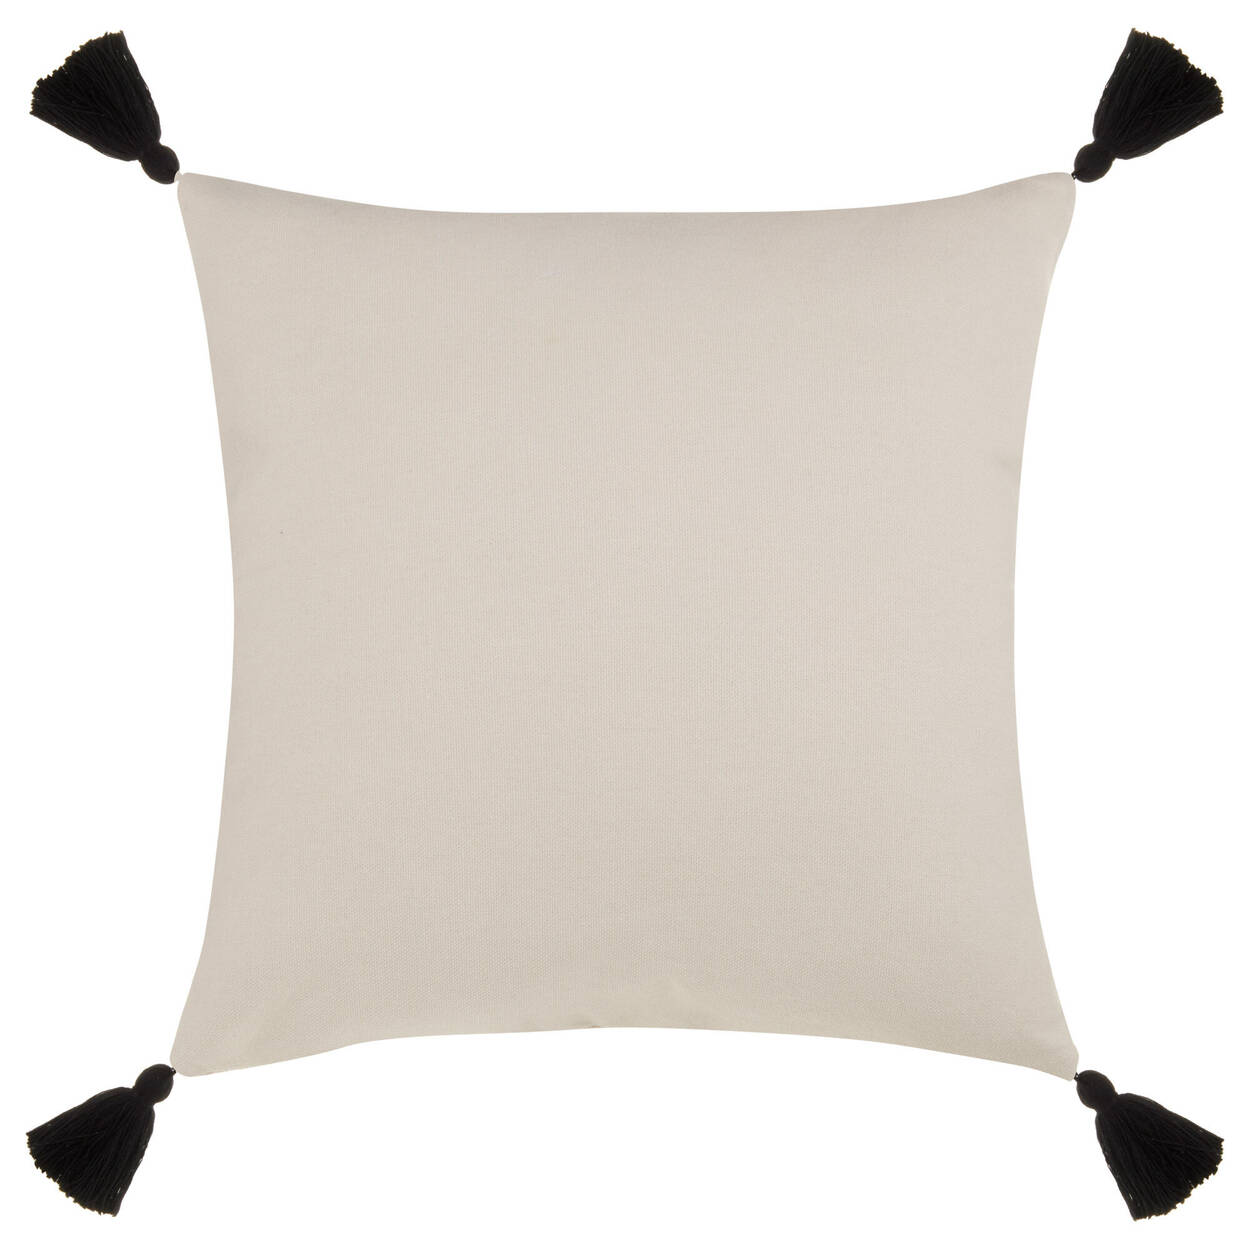 "Luisa Pillow Cover 18"" x 18"""